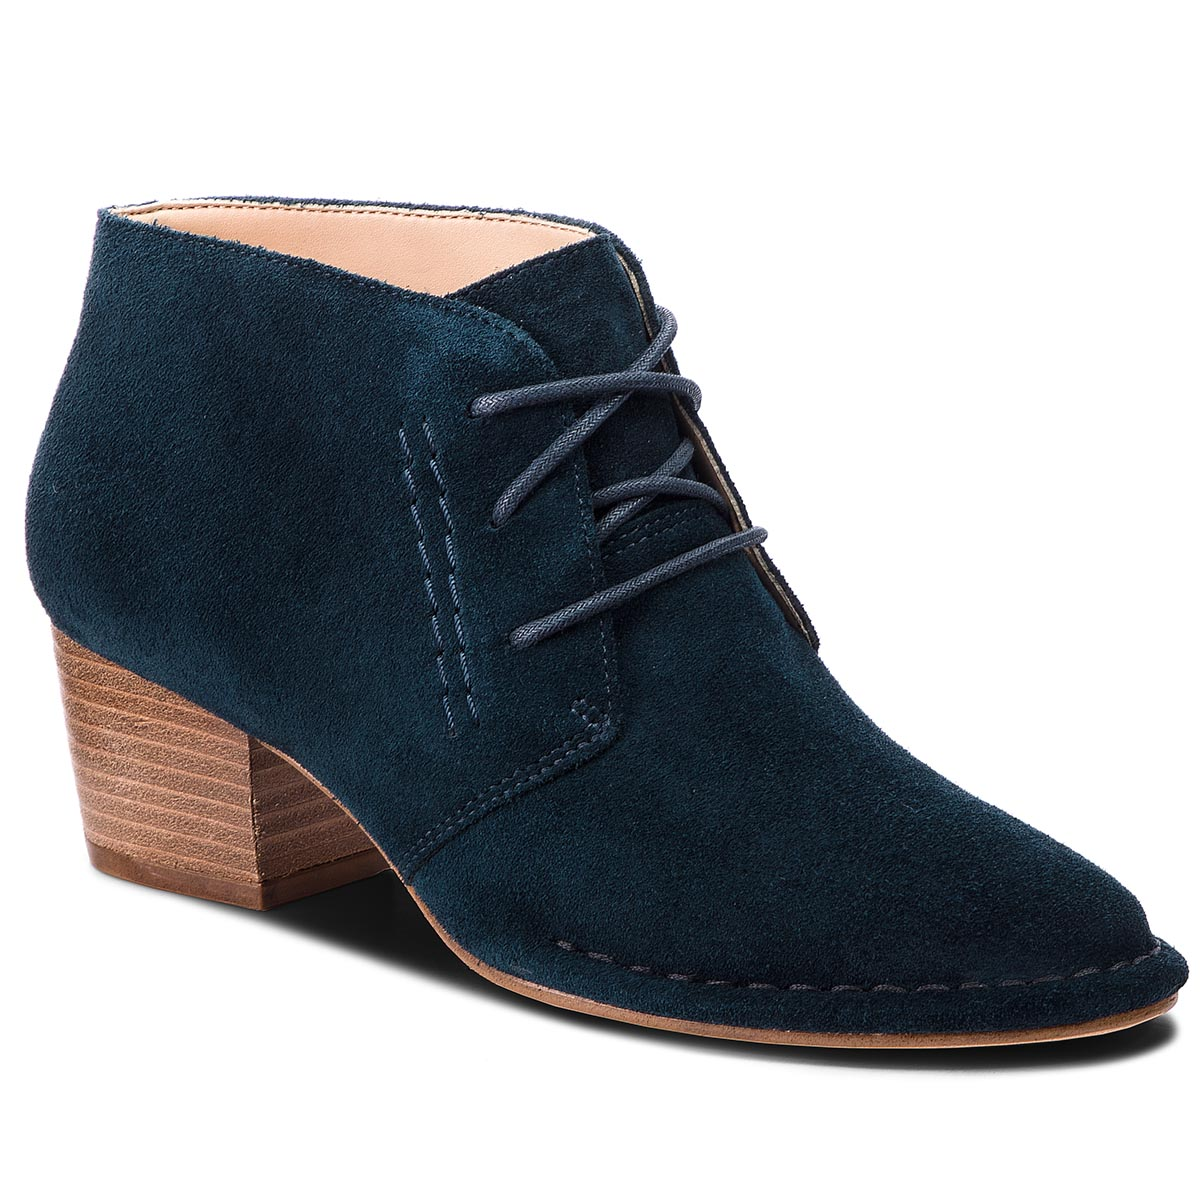 Botki CLARKS - Spiced Charm 261366594 Teal Suede